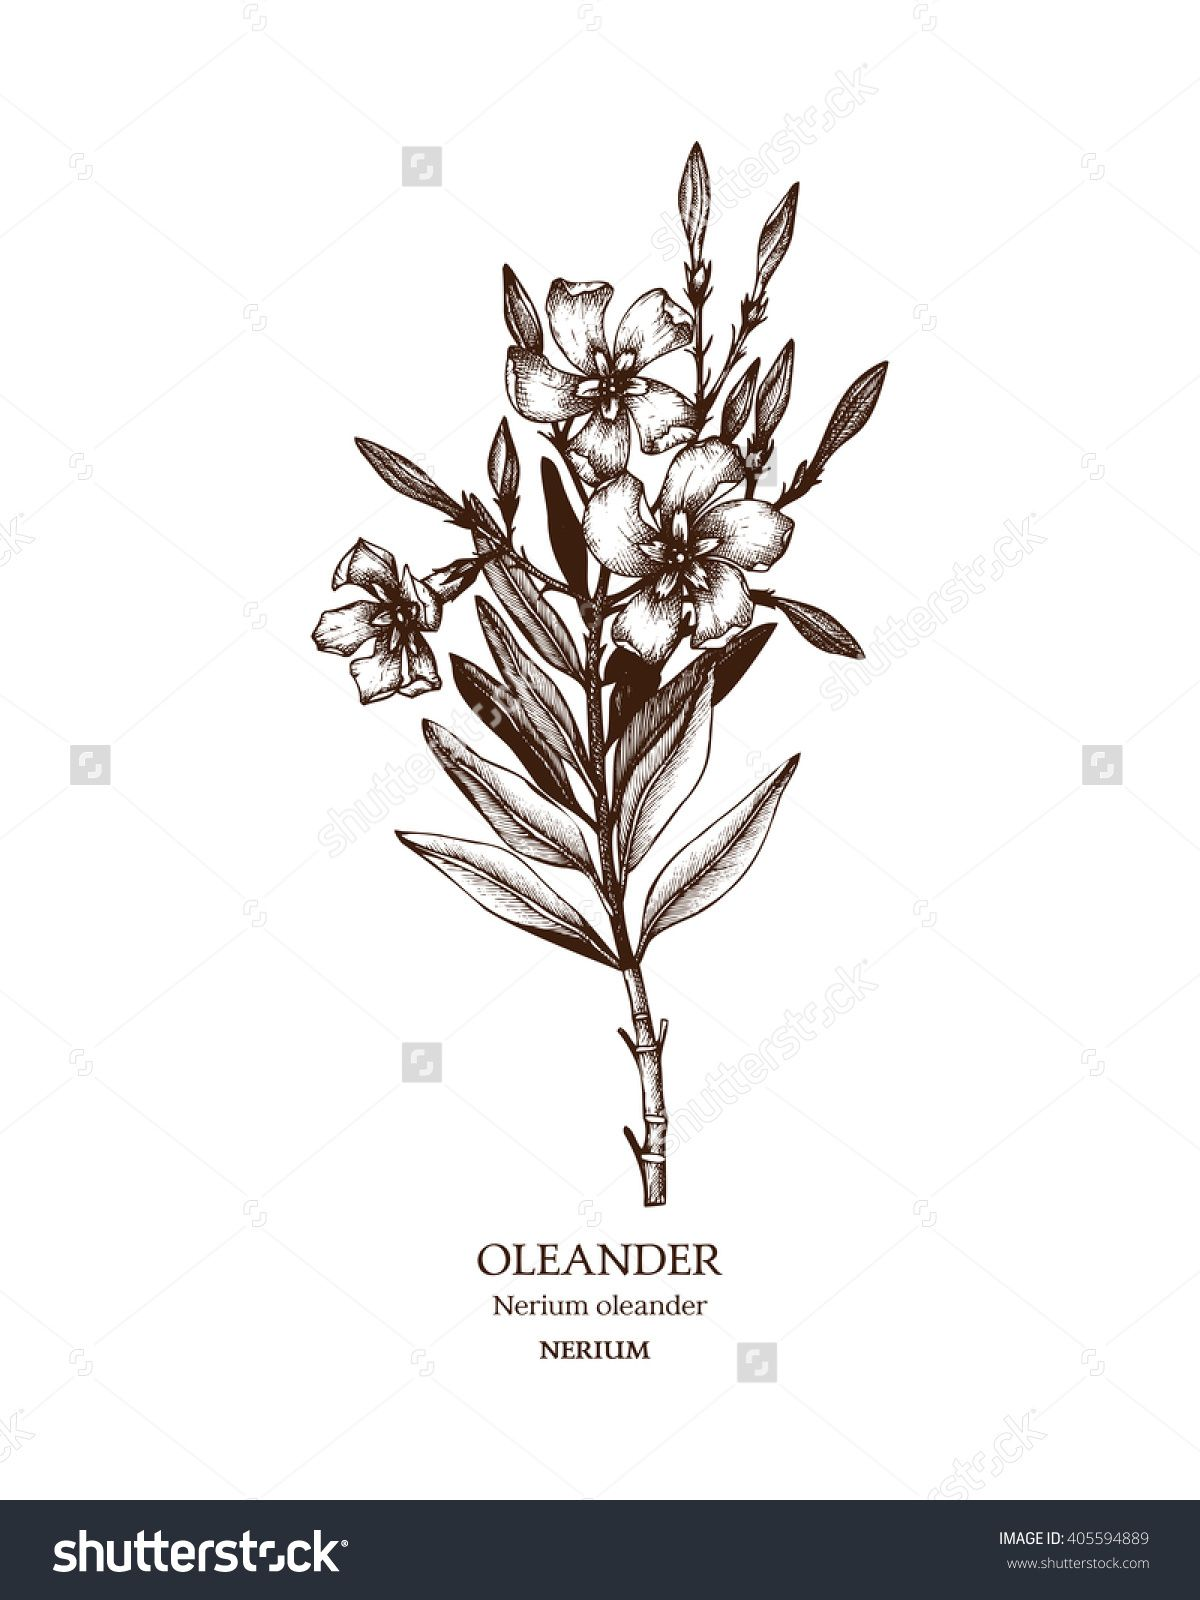 Image Result For Oleander Flower Illustration White Oleander Book